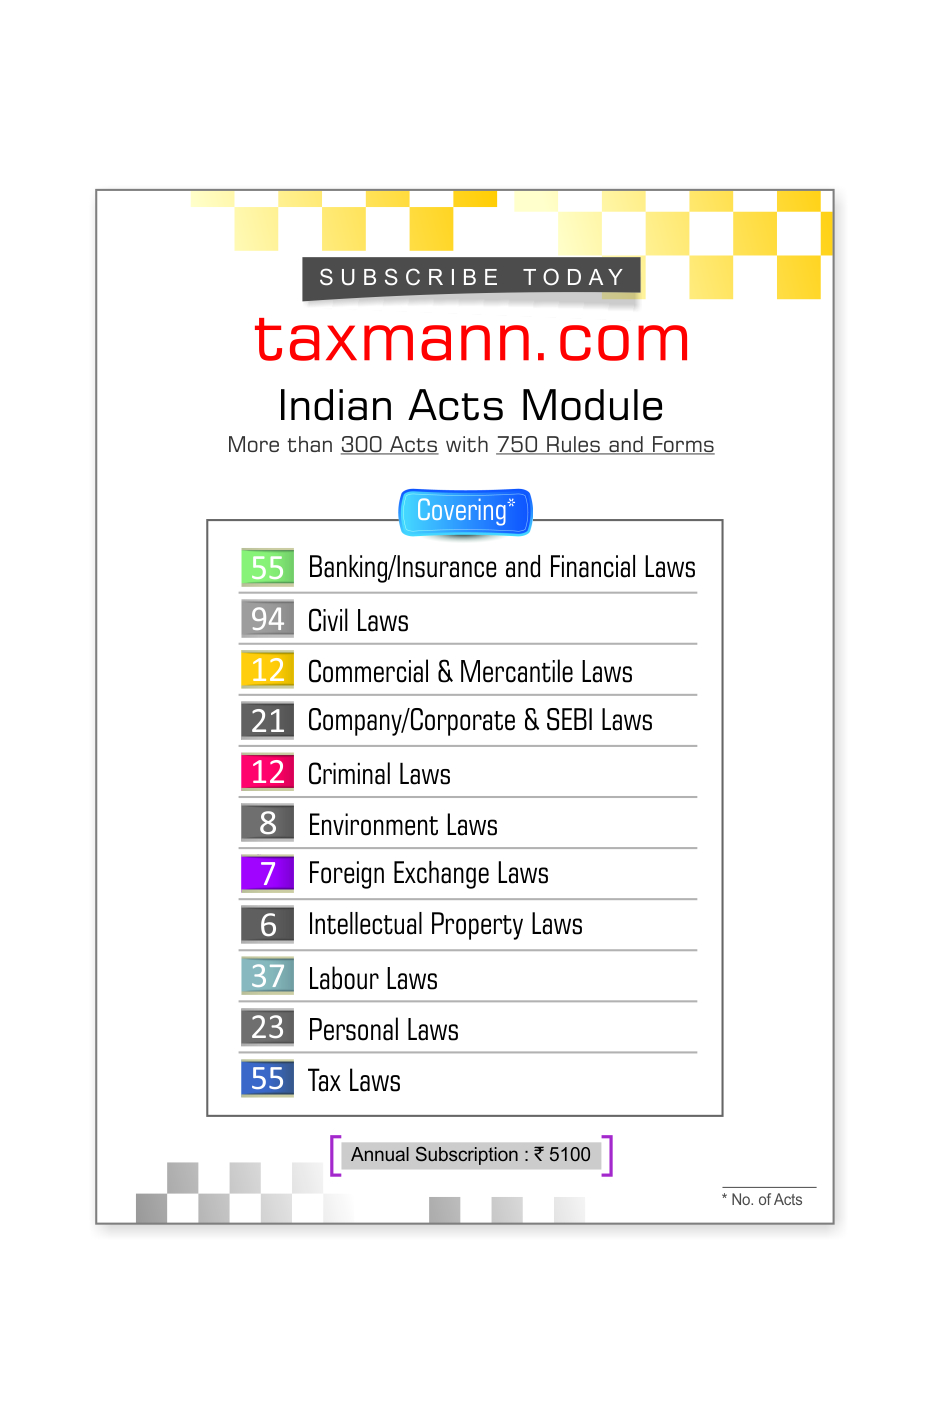 Indian Acts Module with more than 300 Act, 780 Rules & 270 Forms